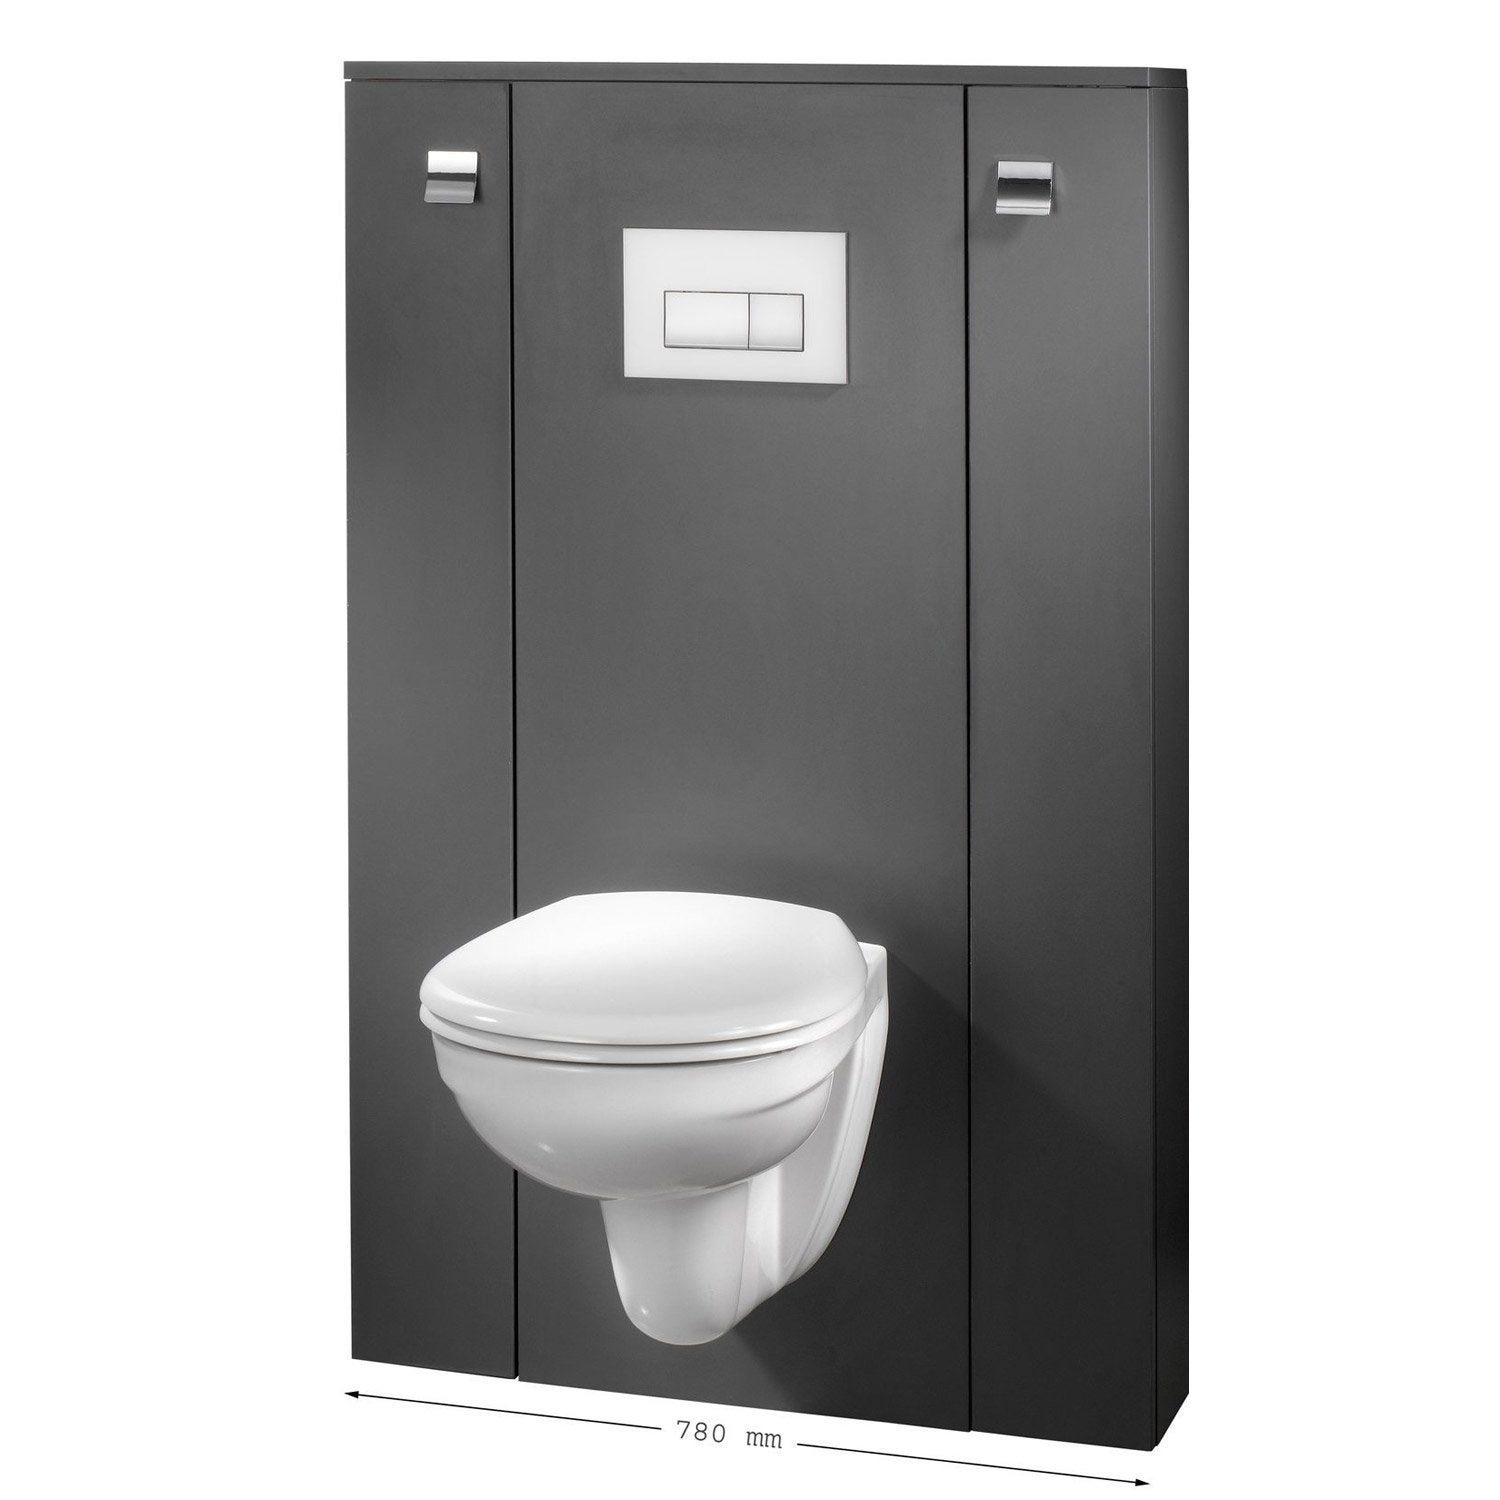 Meuble pour les toilettes fashion designs for Meuble de wc leroy merlin